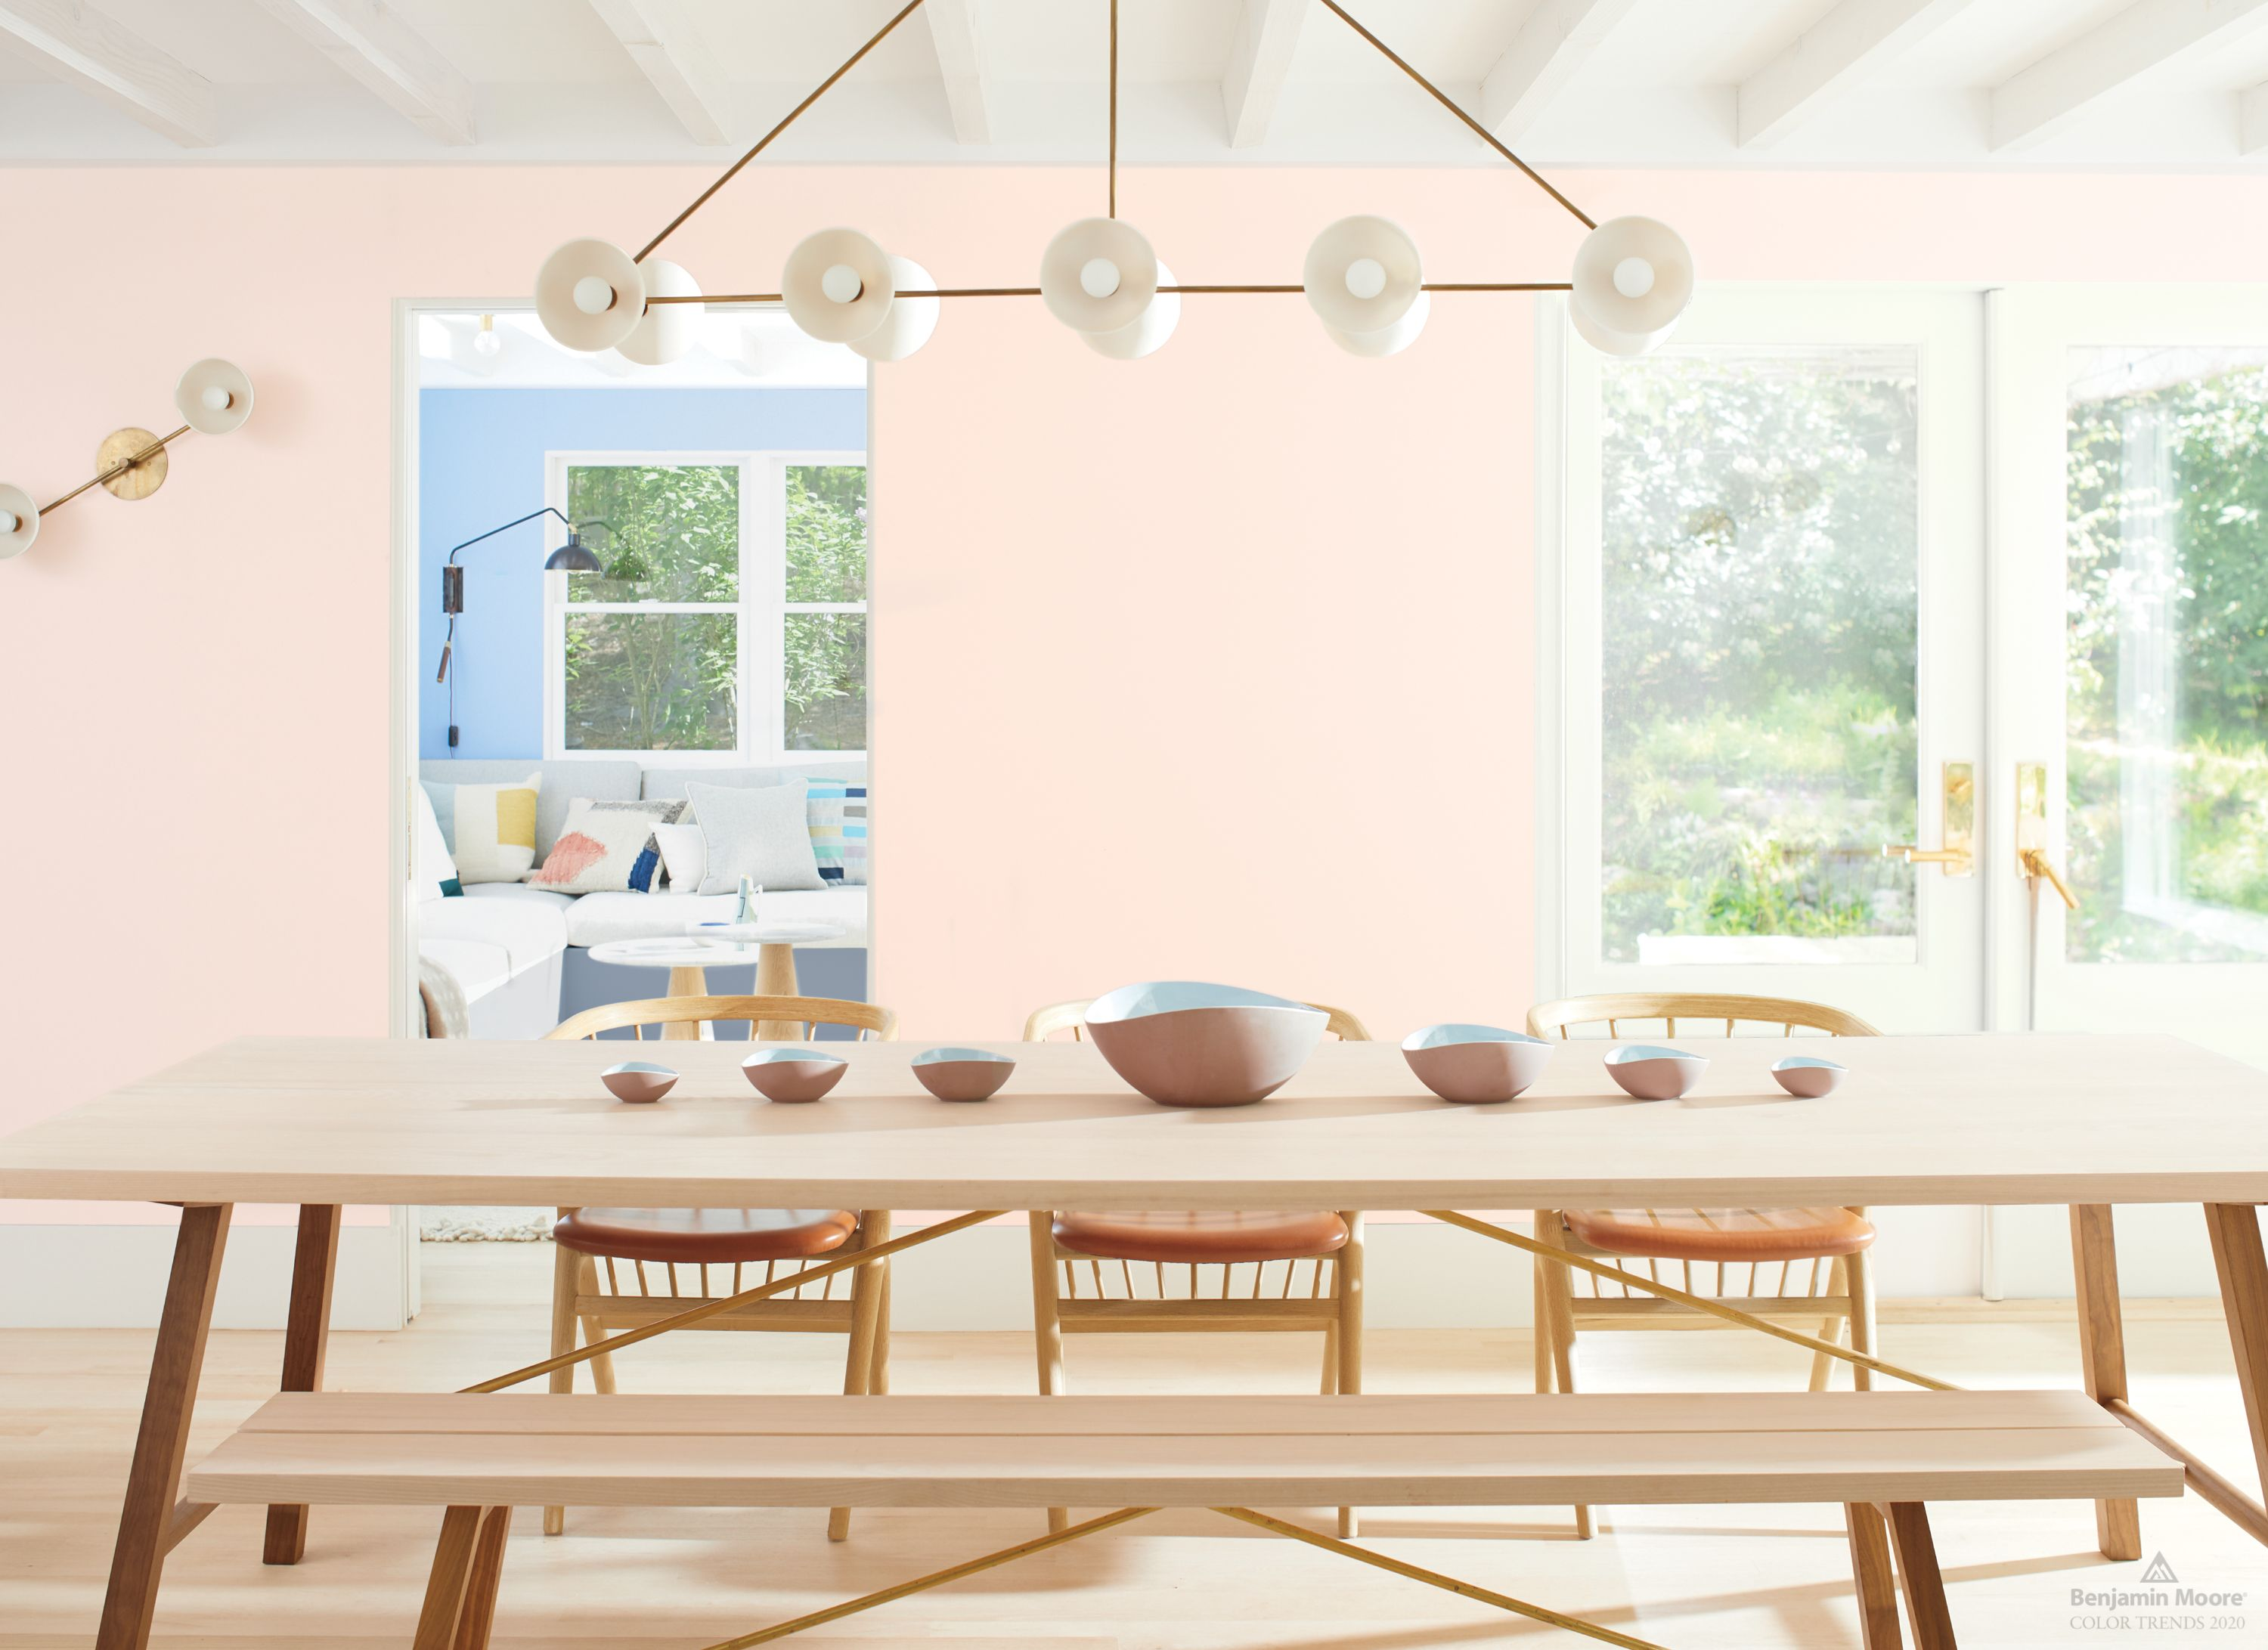 Benjamin Moore announces its 2020 Colour of the Year